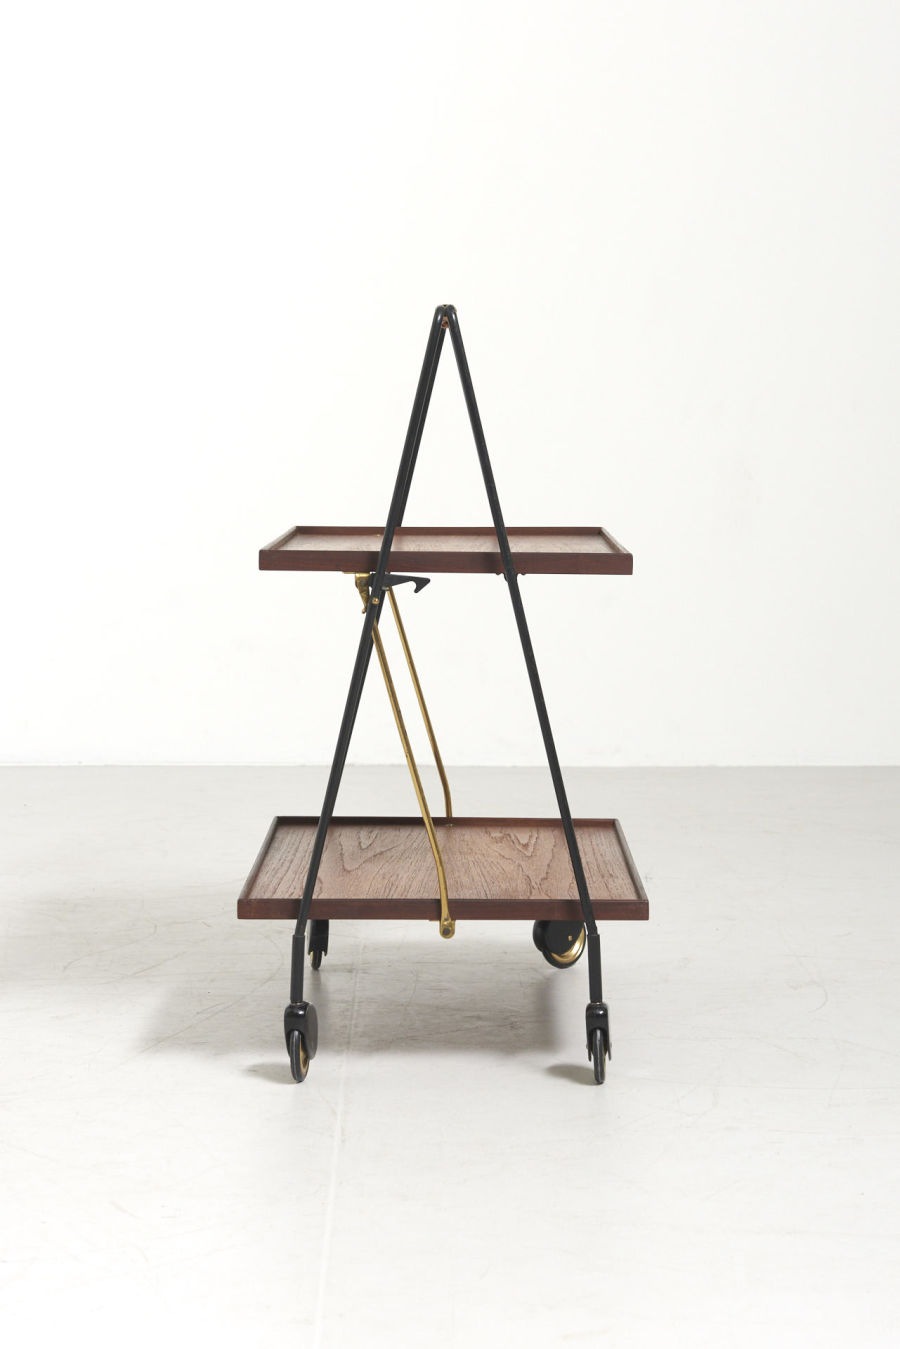 modestfurniture-vintage-2740-teak-foldable-trolley02